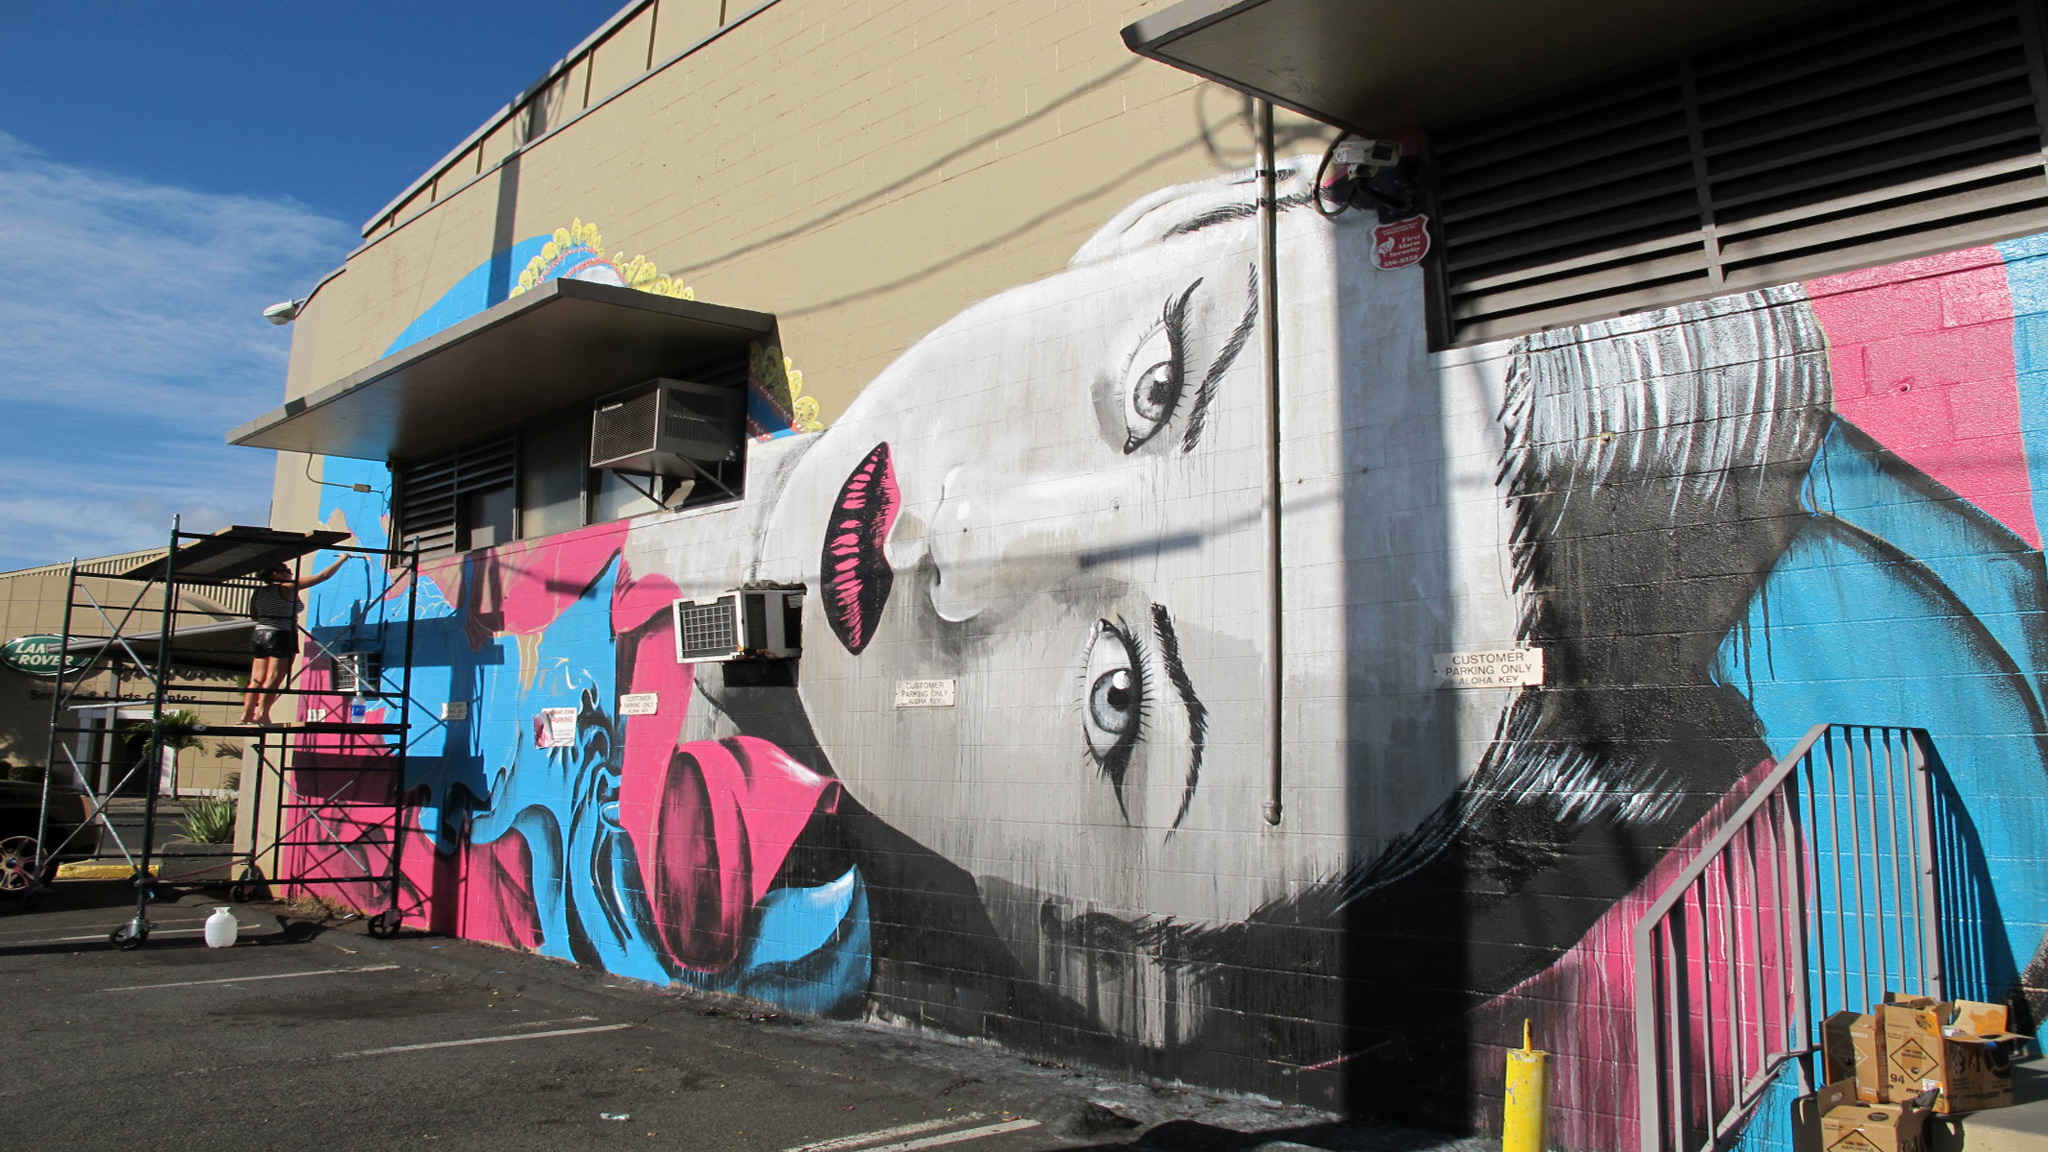 Rone returns to Pow Wow Hawaii this year. The stencil artist from Melbourne, Australia, is an original member of Everfresh Studios and is known for his stylized depictions of female faces. This is Rone's mural from Pow Wow Hawaii 2012.